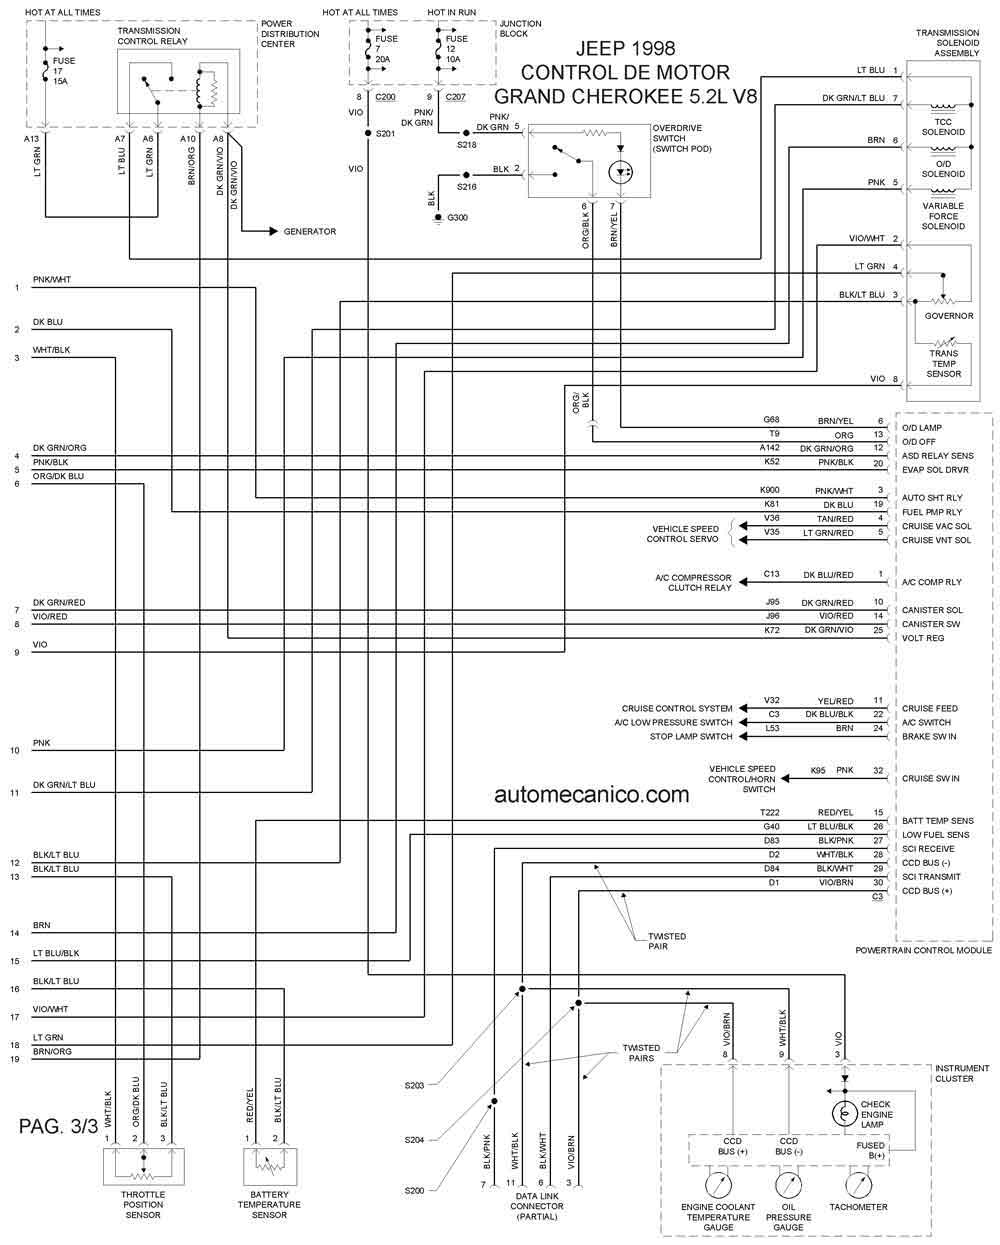 jeep commando diagrama de cableado